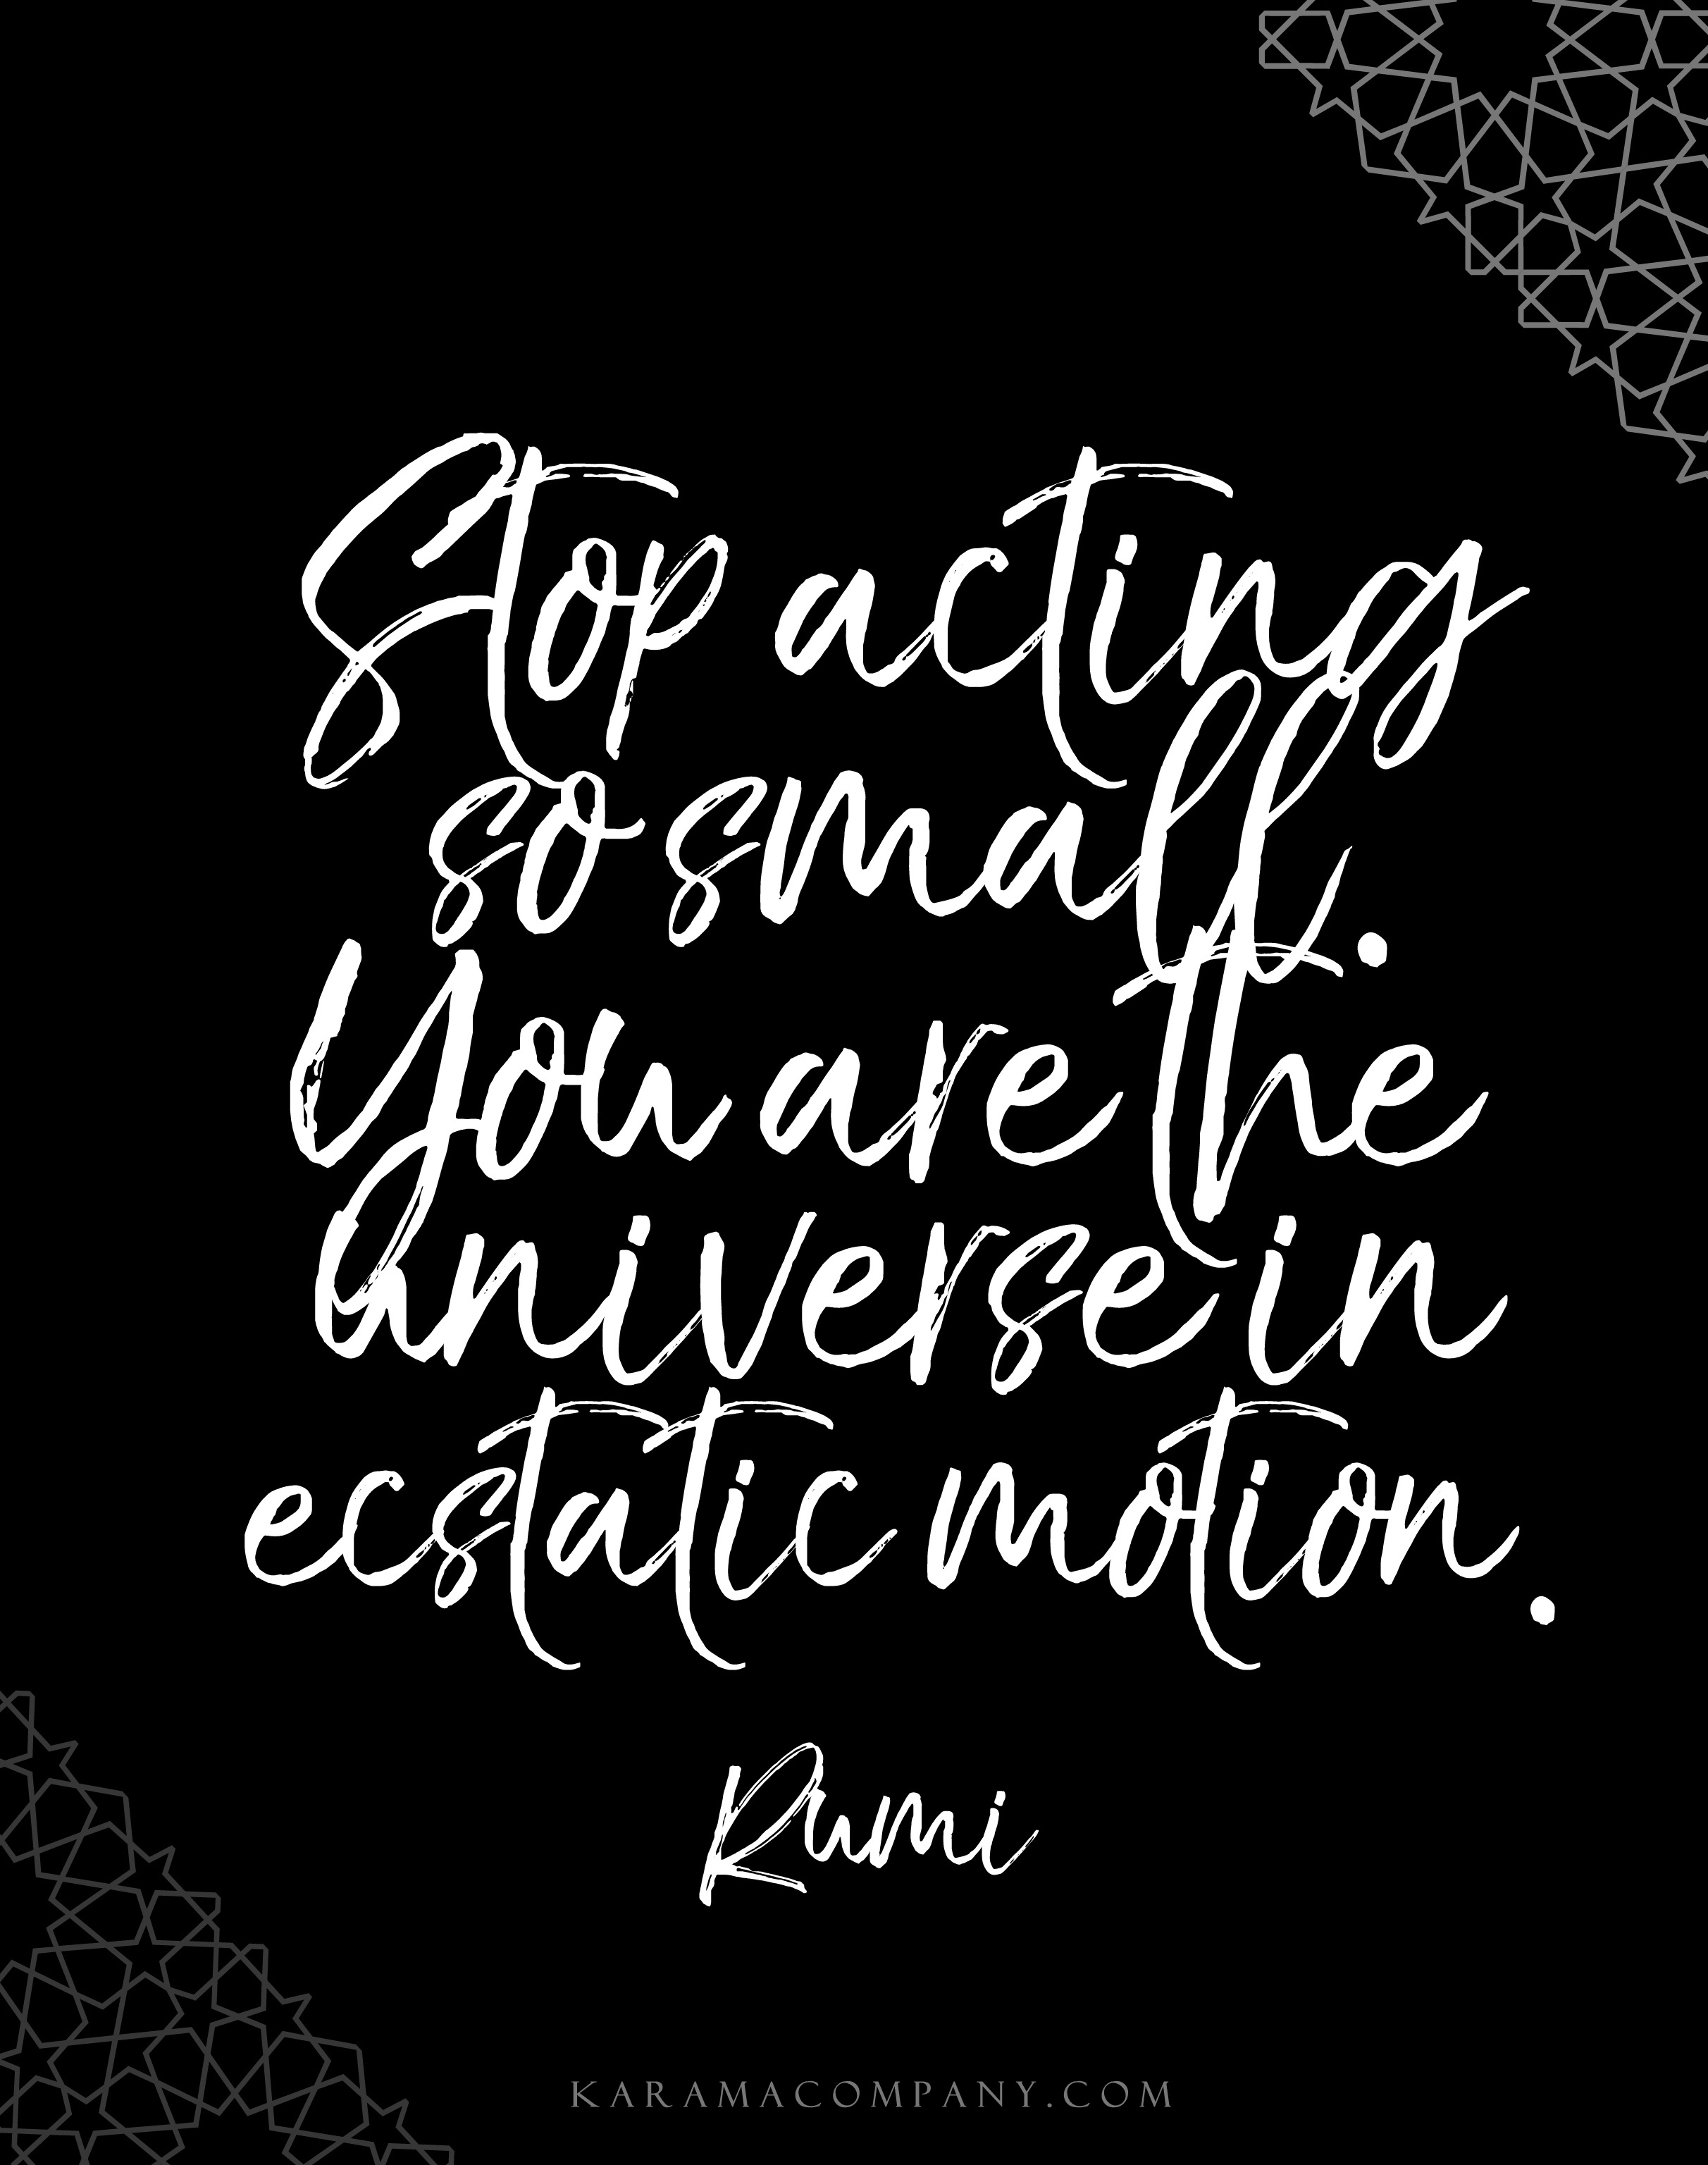 stop acting so small you are the universe in estatic motion #rumii